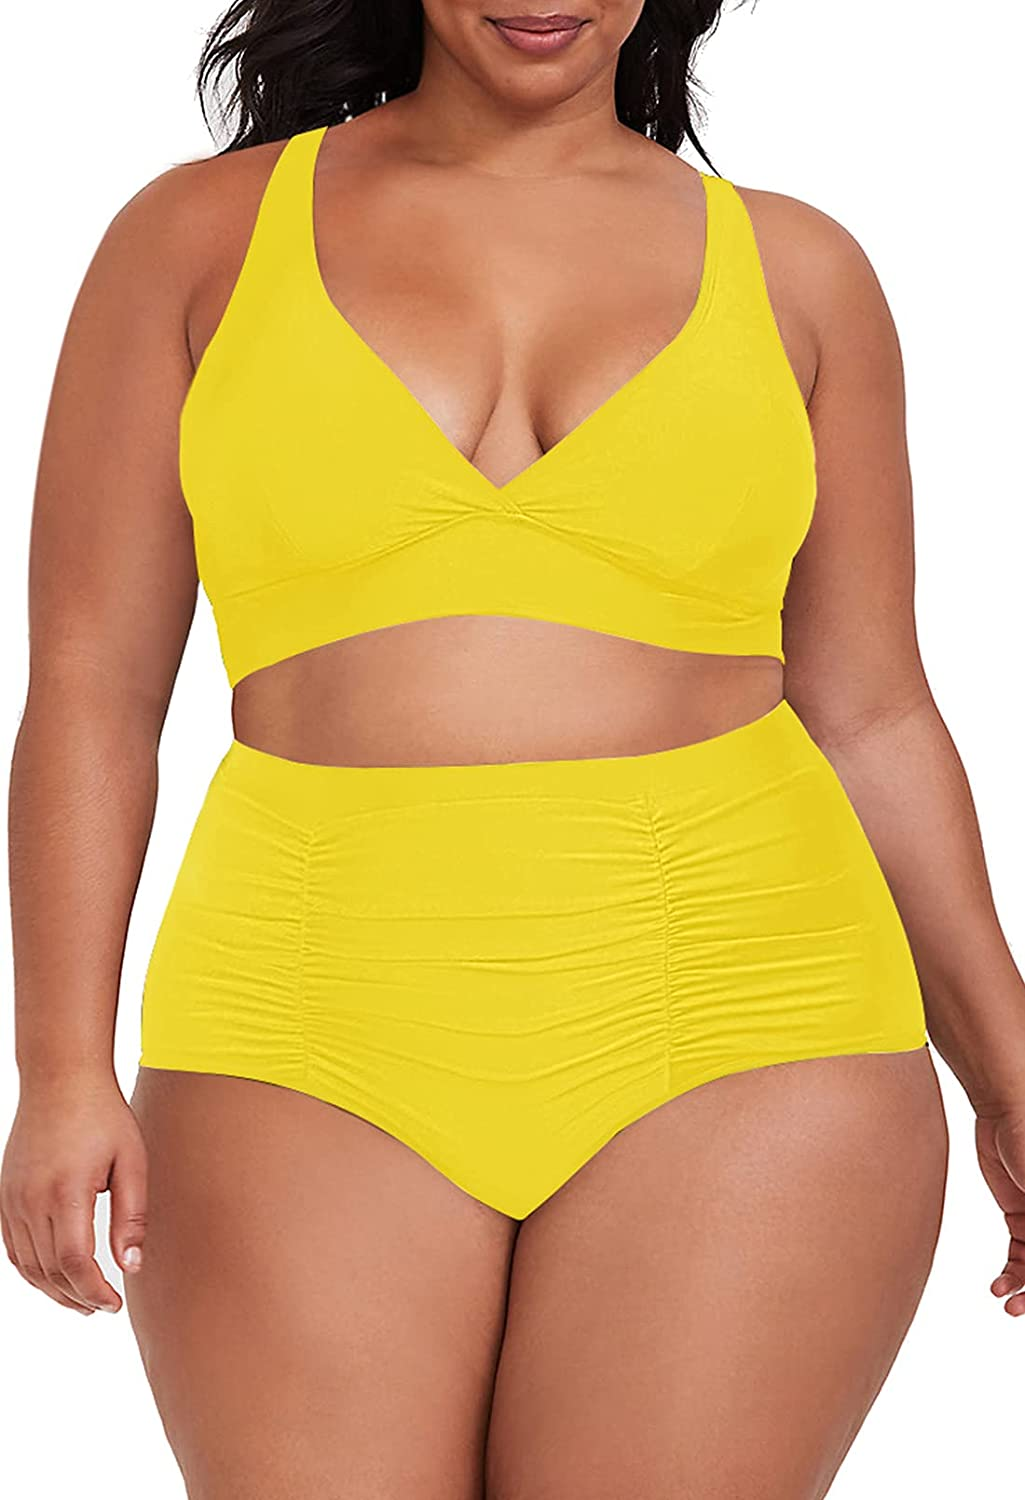 Sovoyontee Women's 2 Piece Plus Size High Waisted Swimsuit Bathing Suit